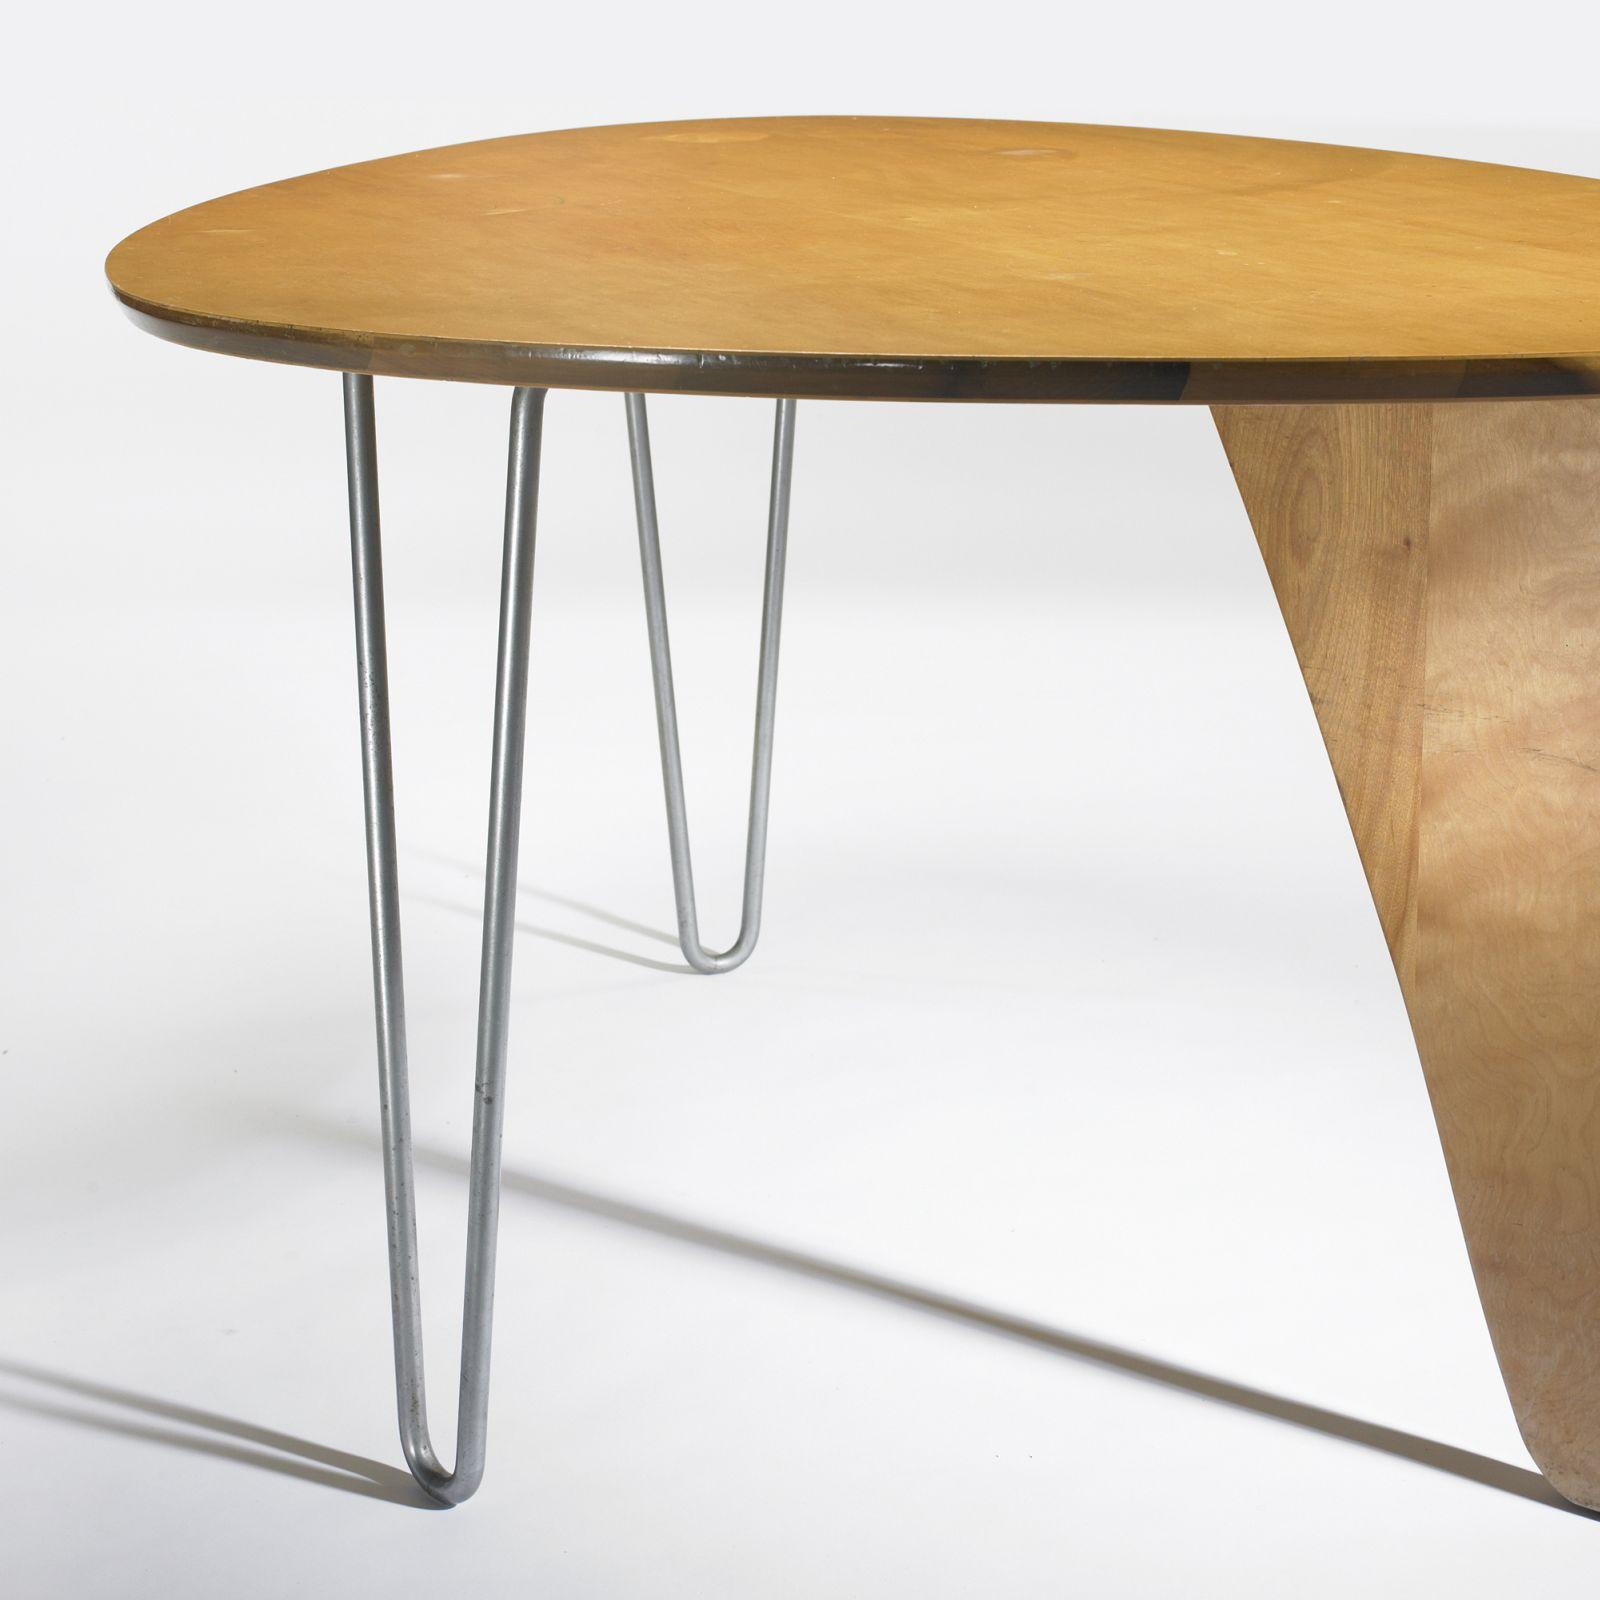 Isamu Noguchi Rudder dining table model IN 20